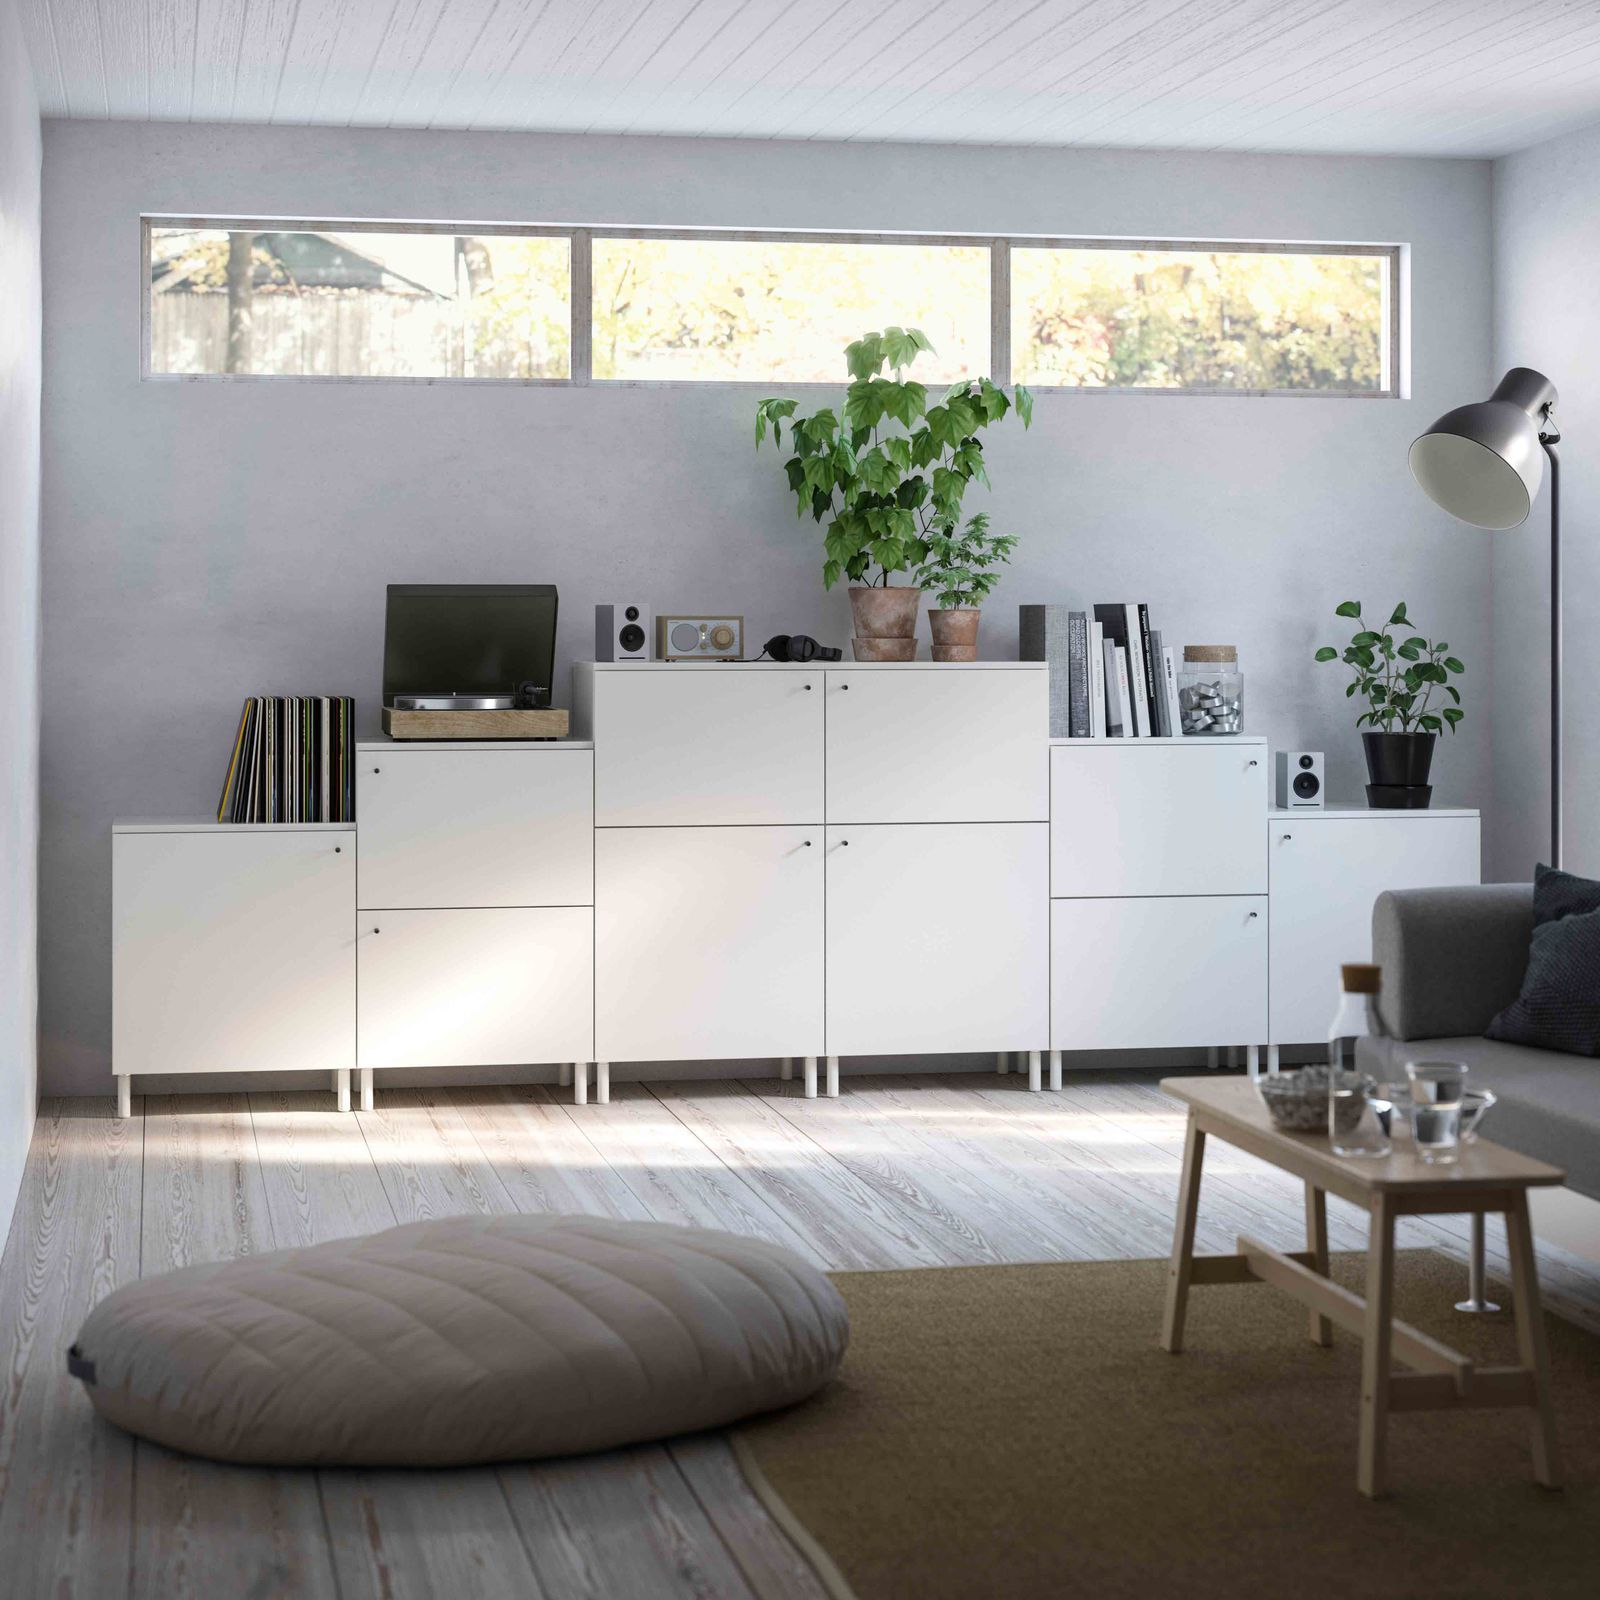 7 reasons why platsa is one of ikea's most important product ranges